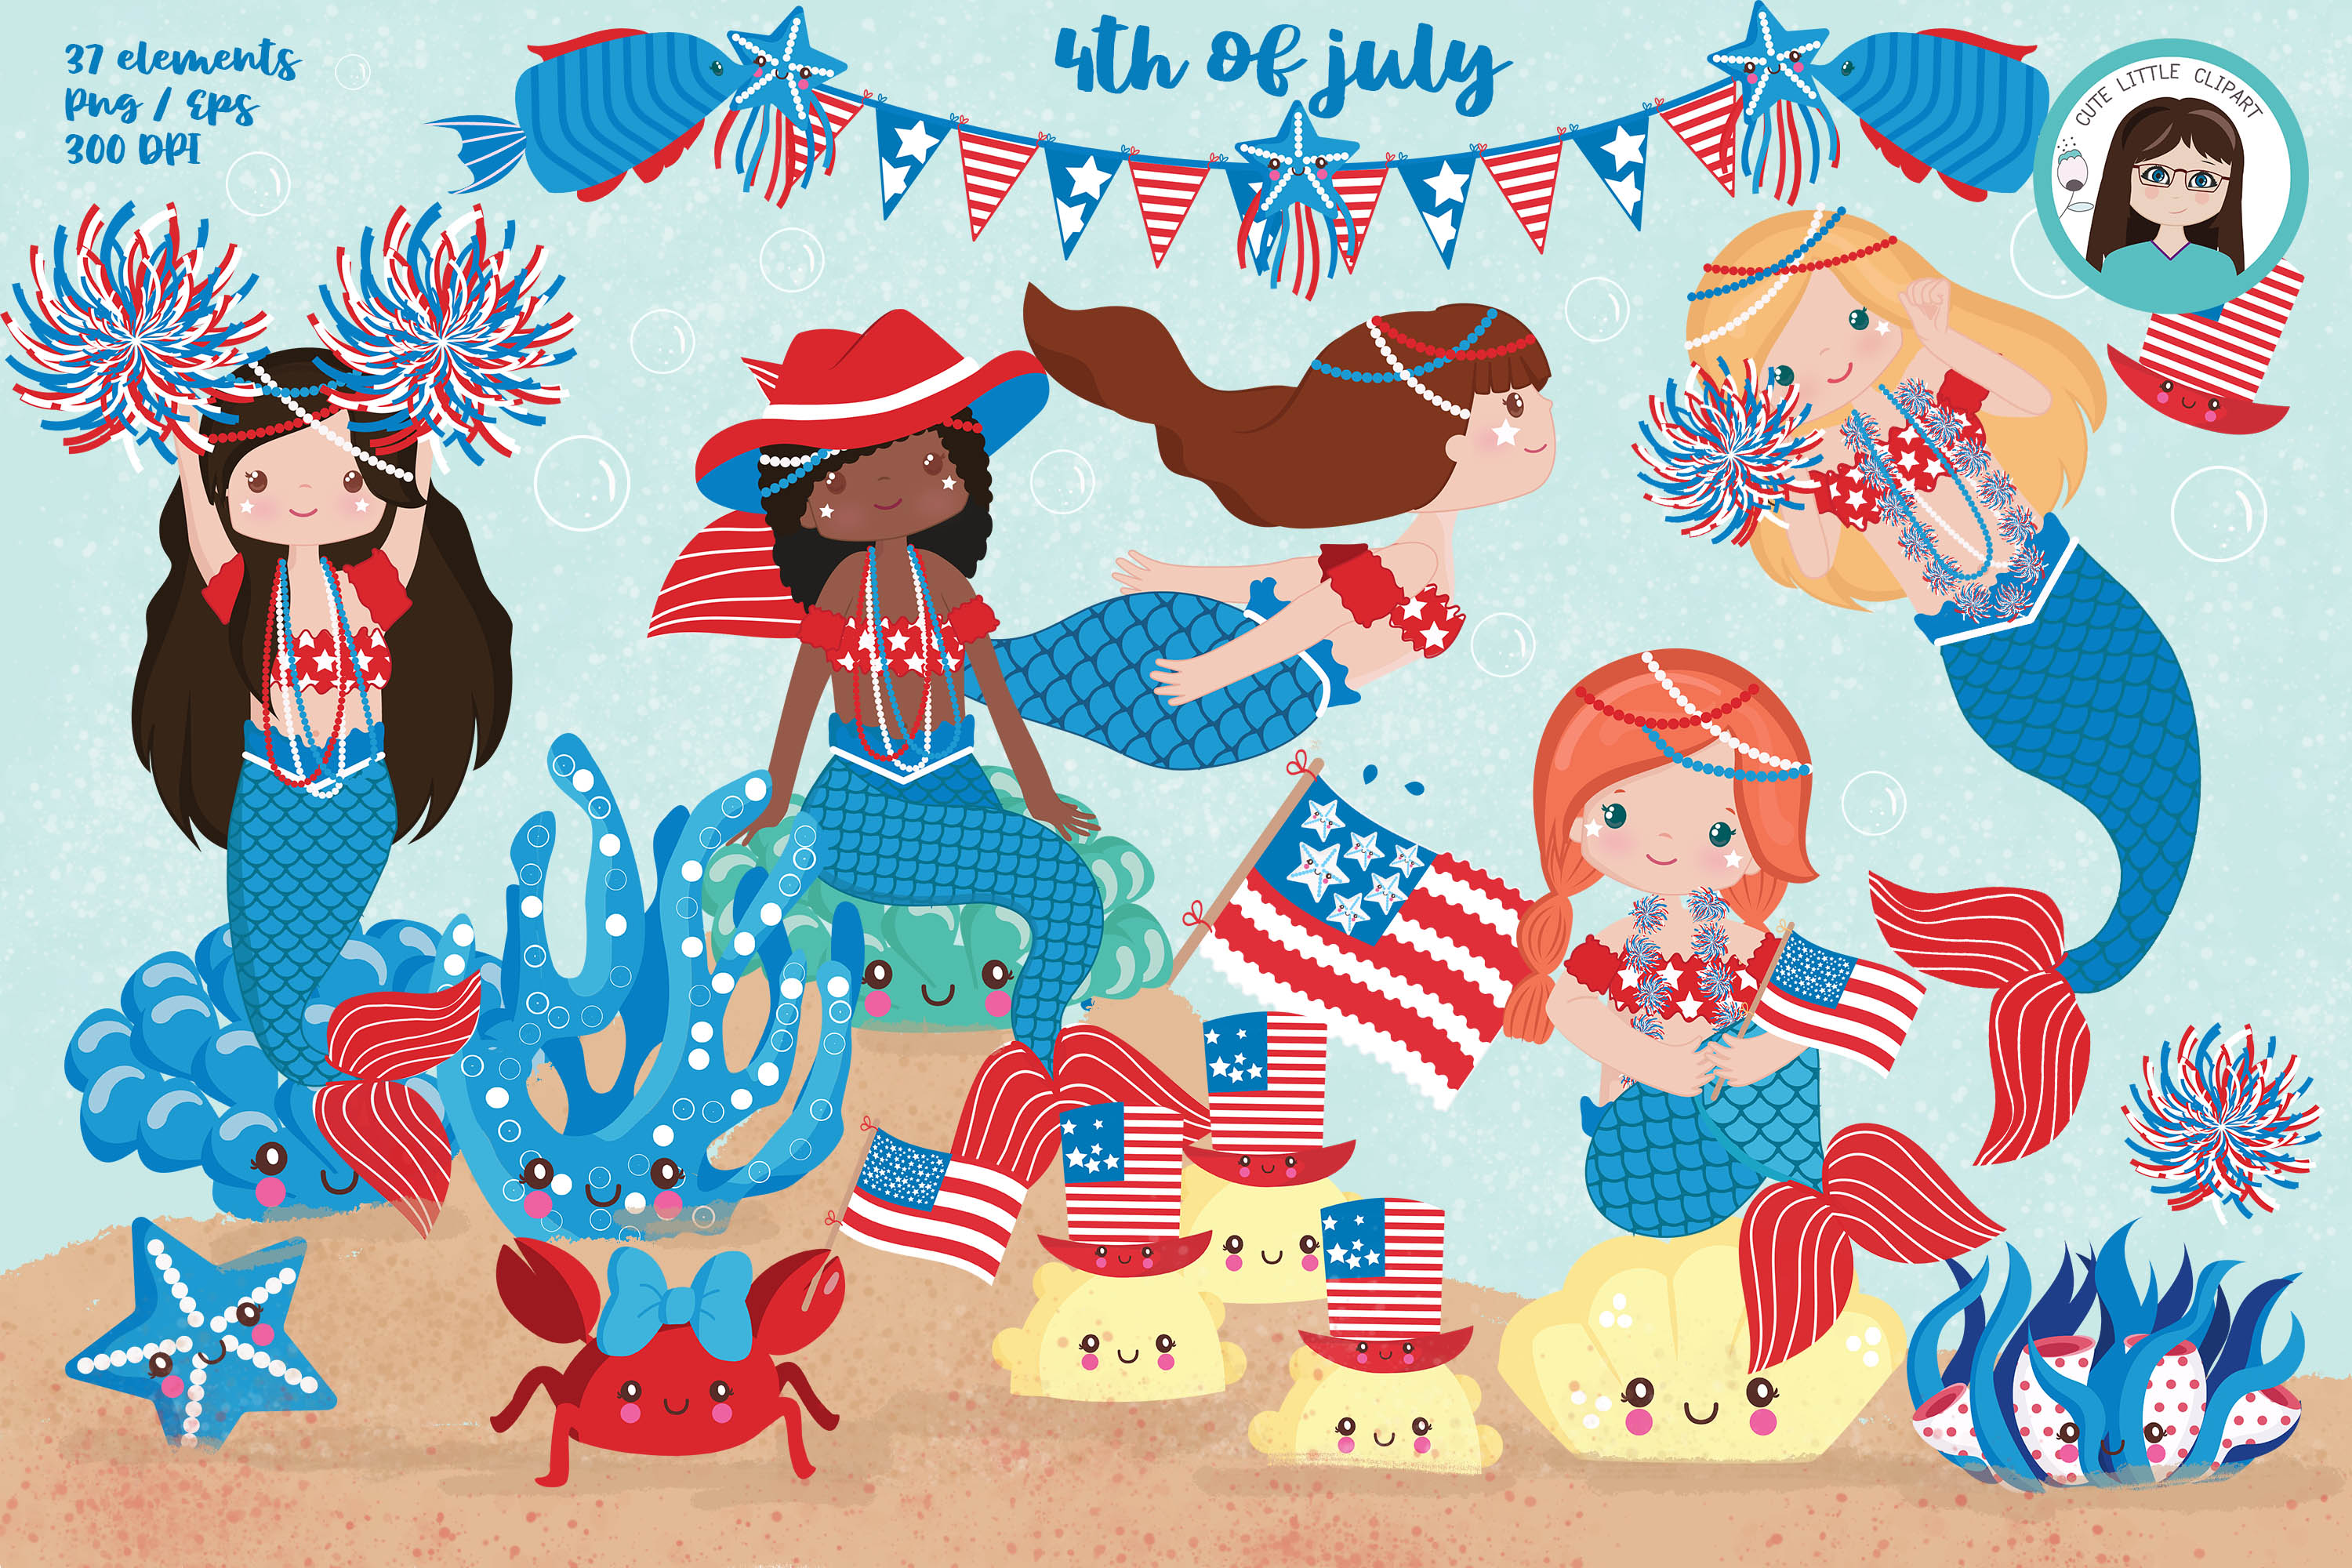 Download Free 4th Of July Mermaids Graphic By Cutelittleclipart Creative Fabrica for Cricut Explore, Silhouette and other cutting machines.